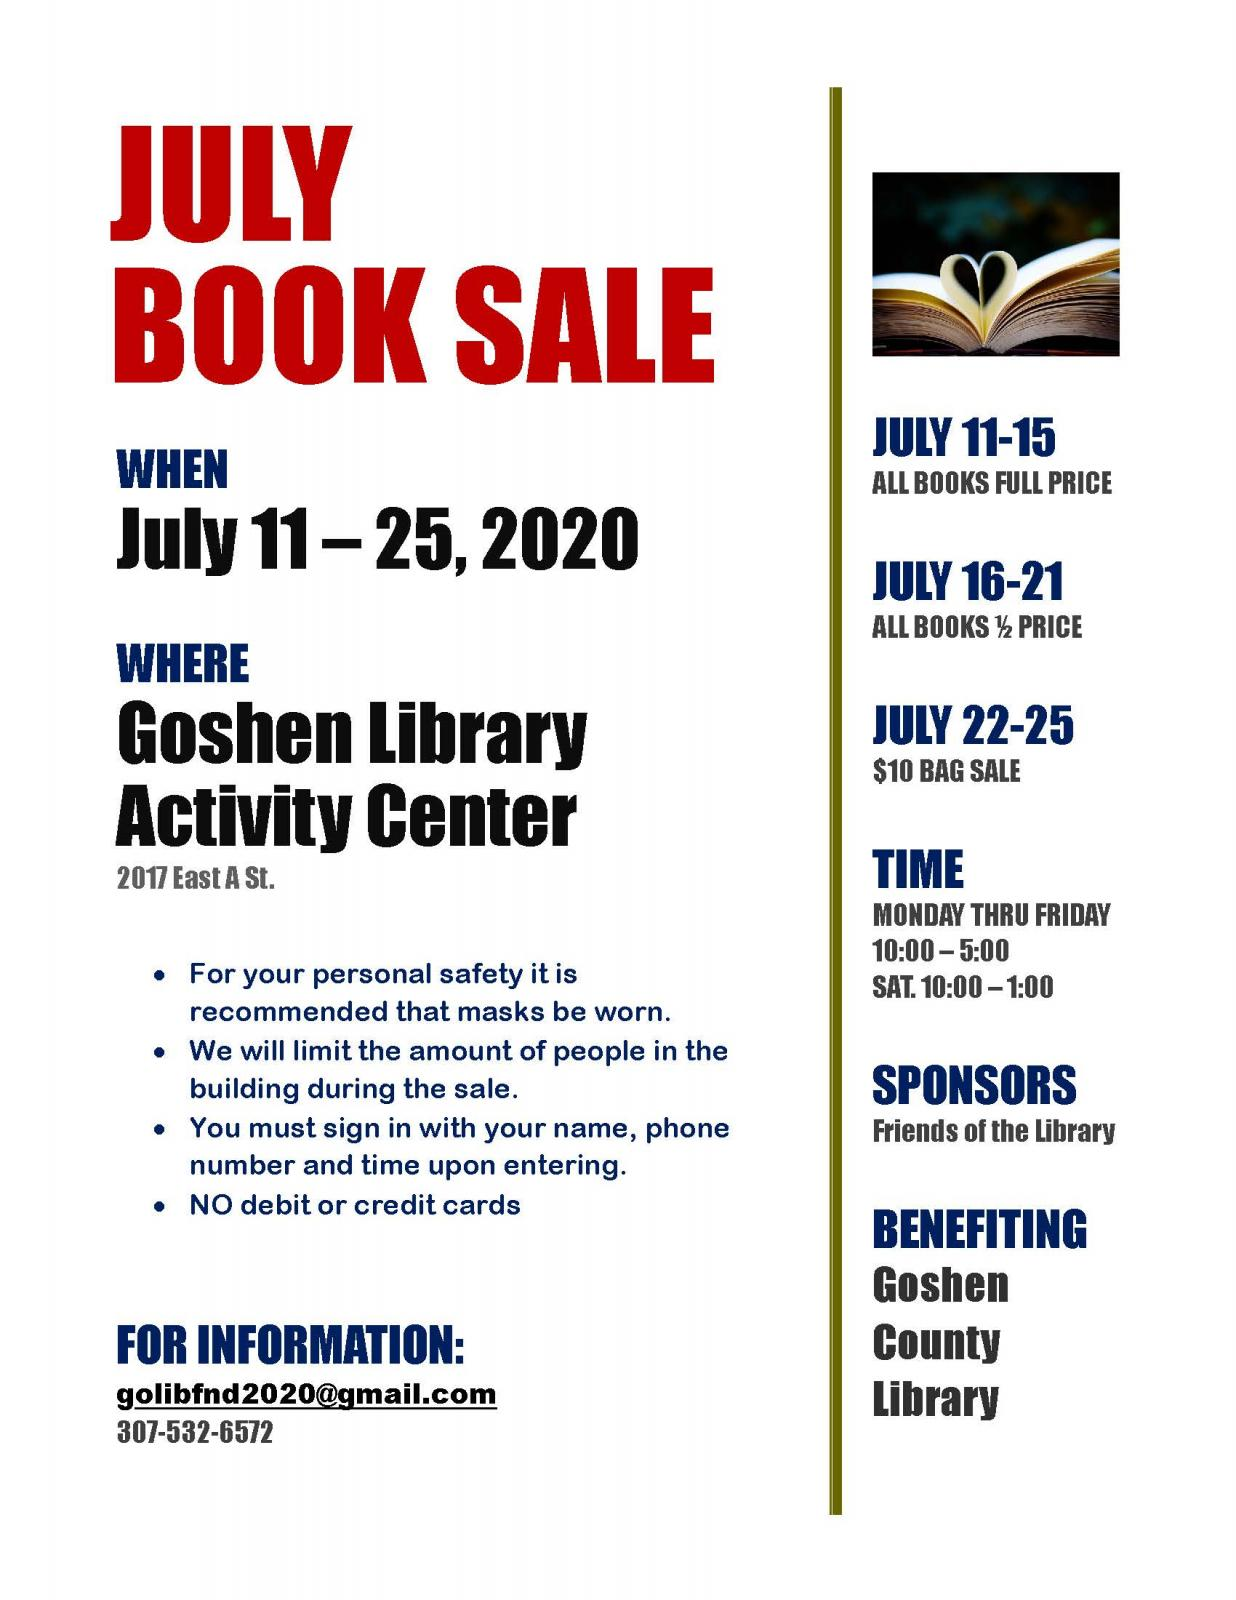 Friends of the Library Book Sale Photo